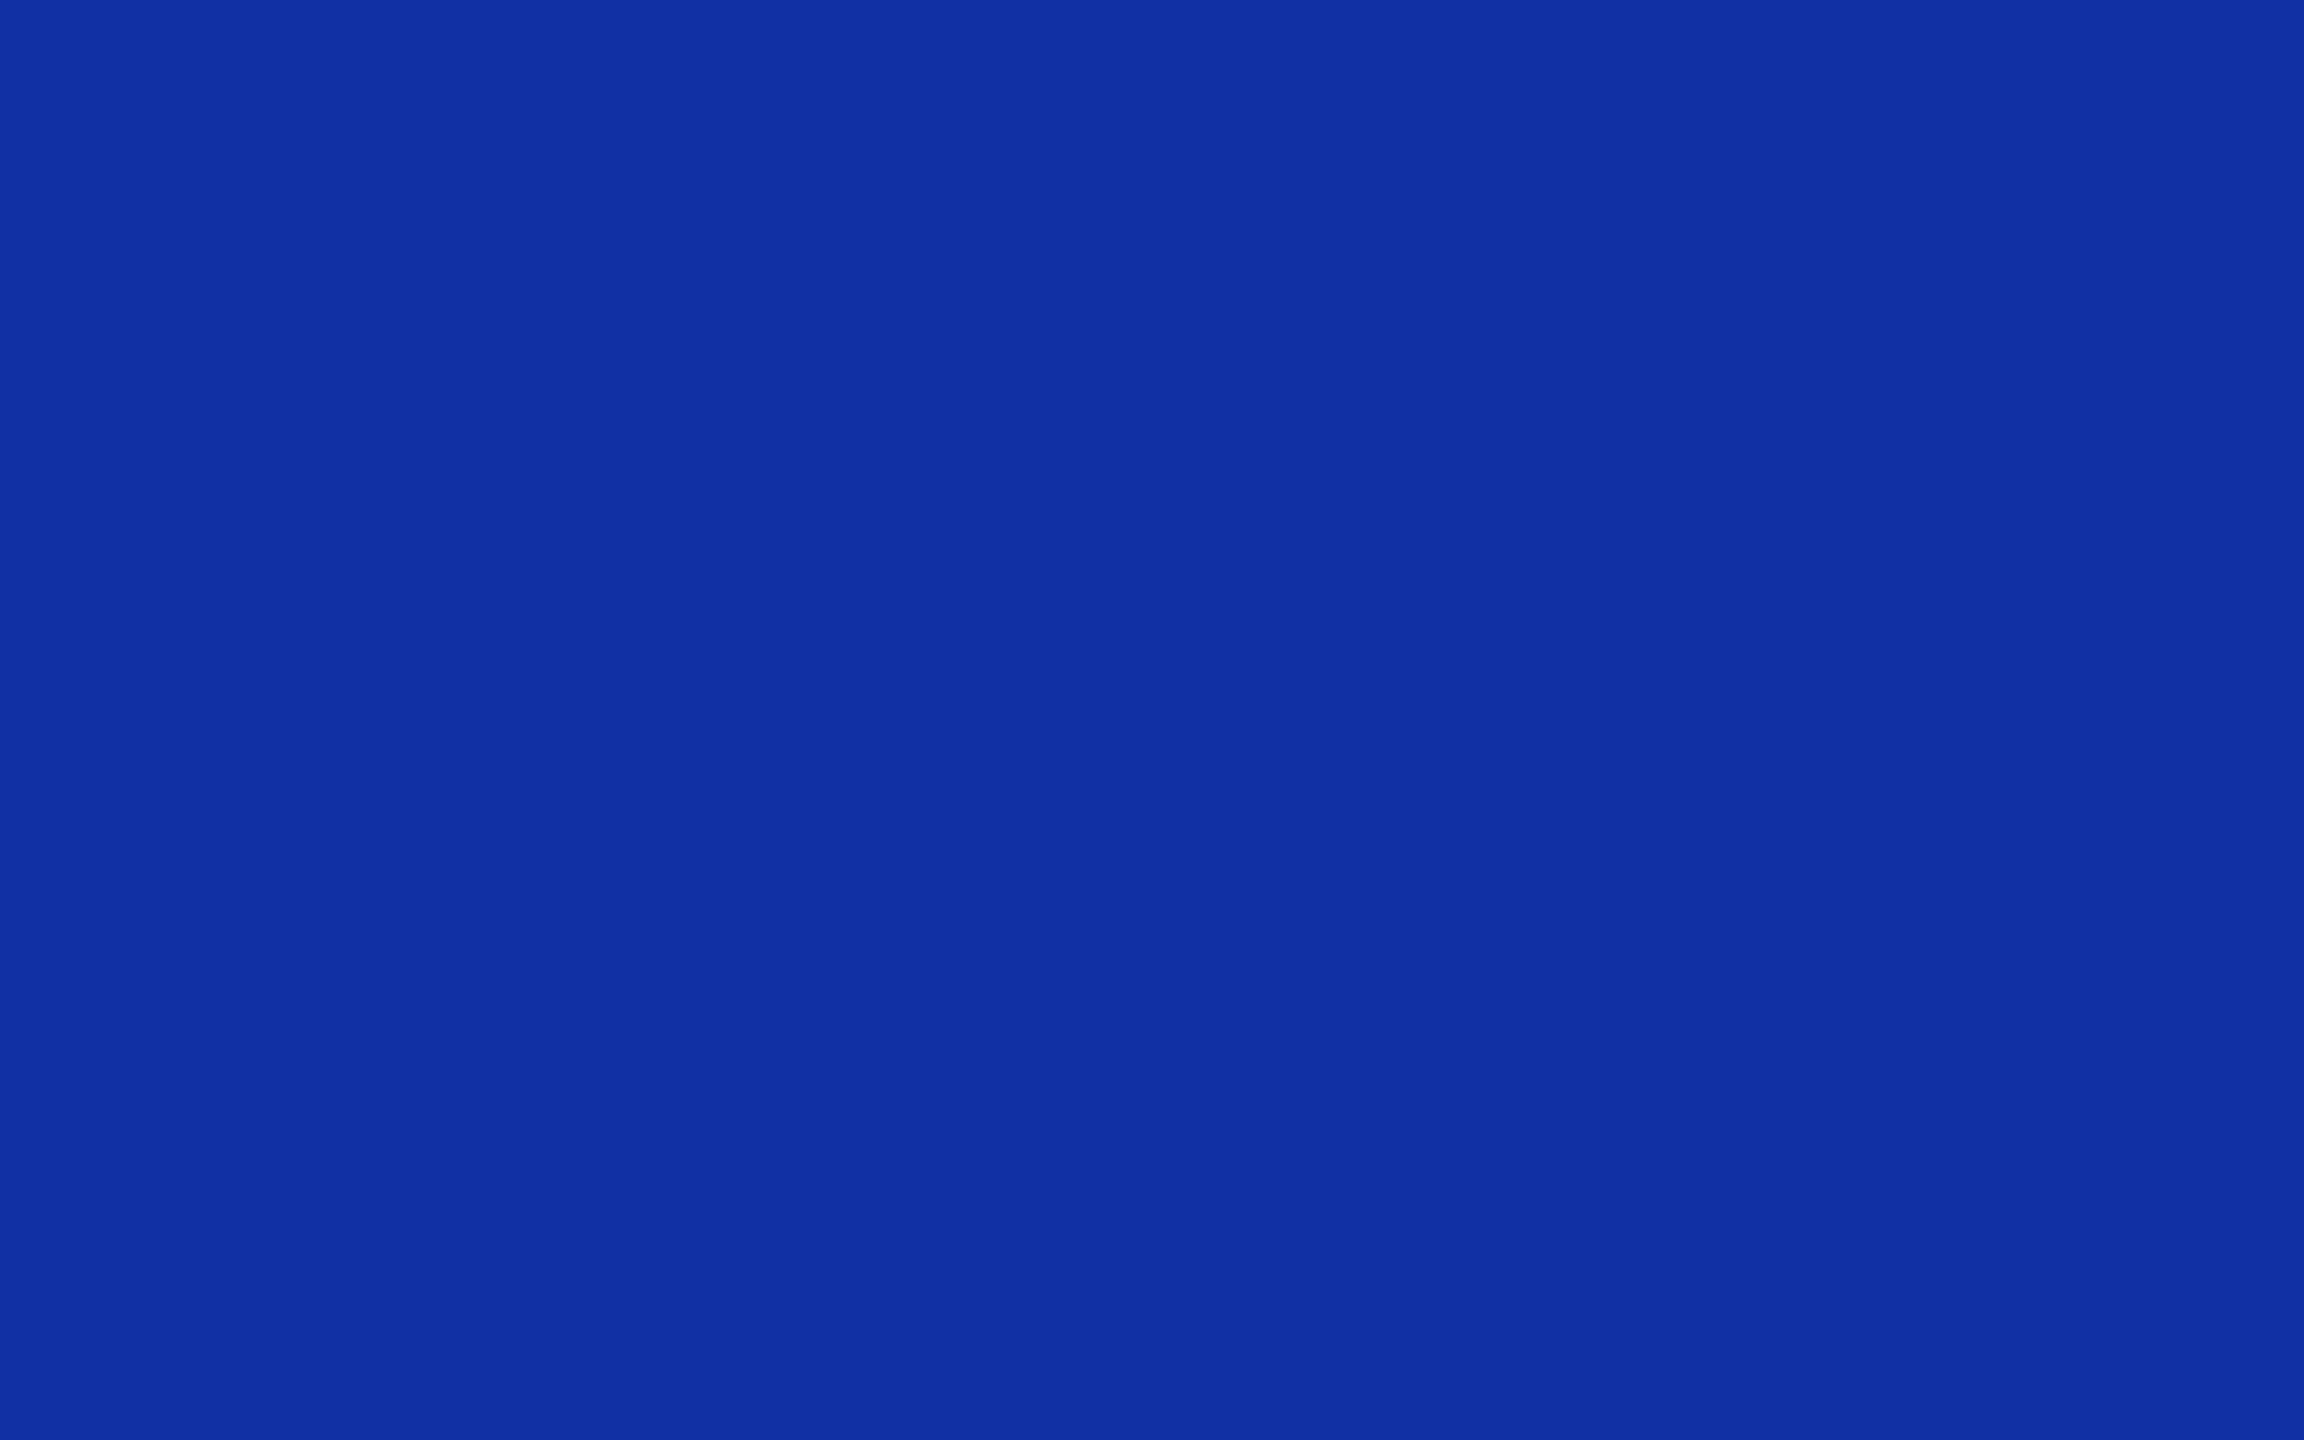 2304x1440 Egyptian Blue Solid Color Background